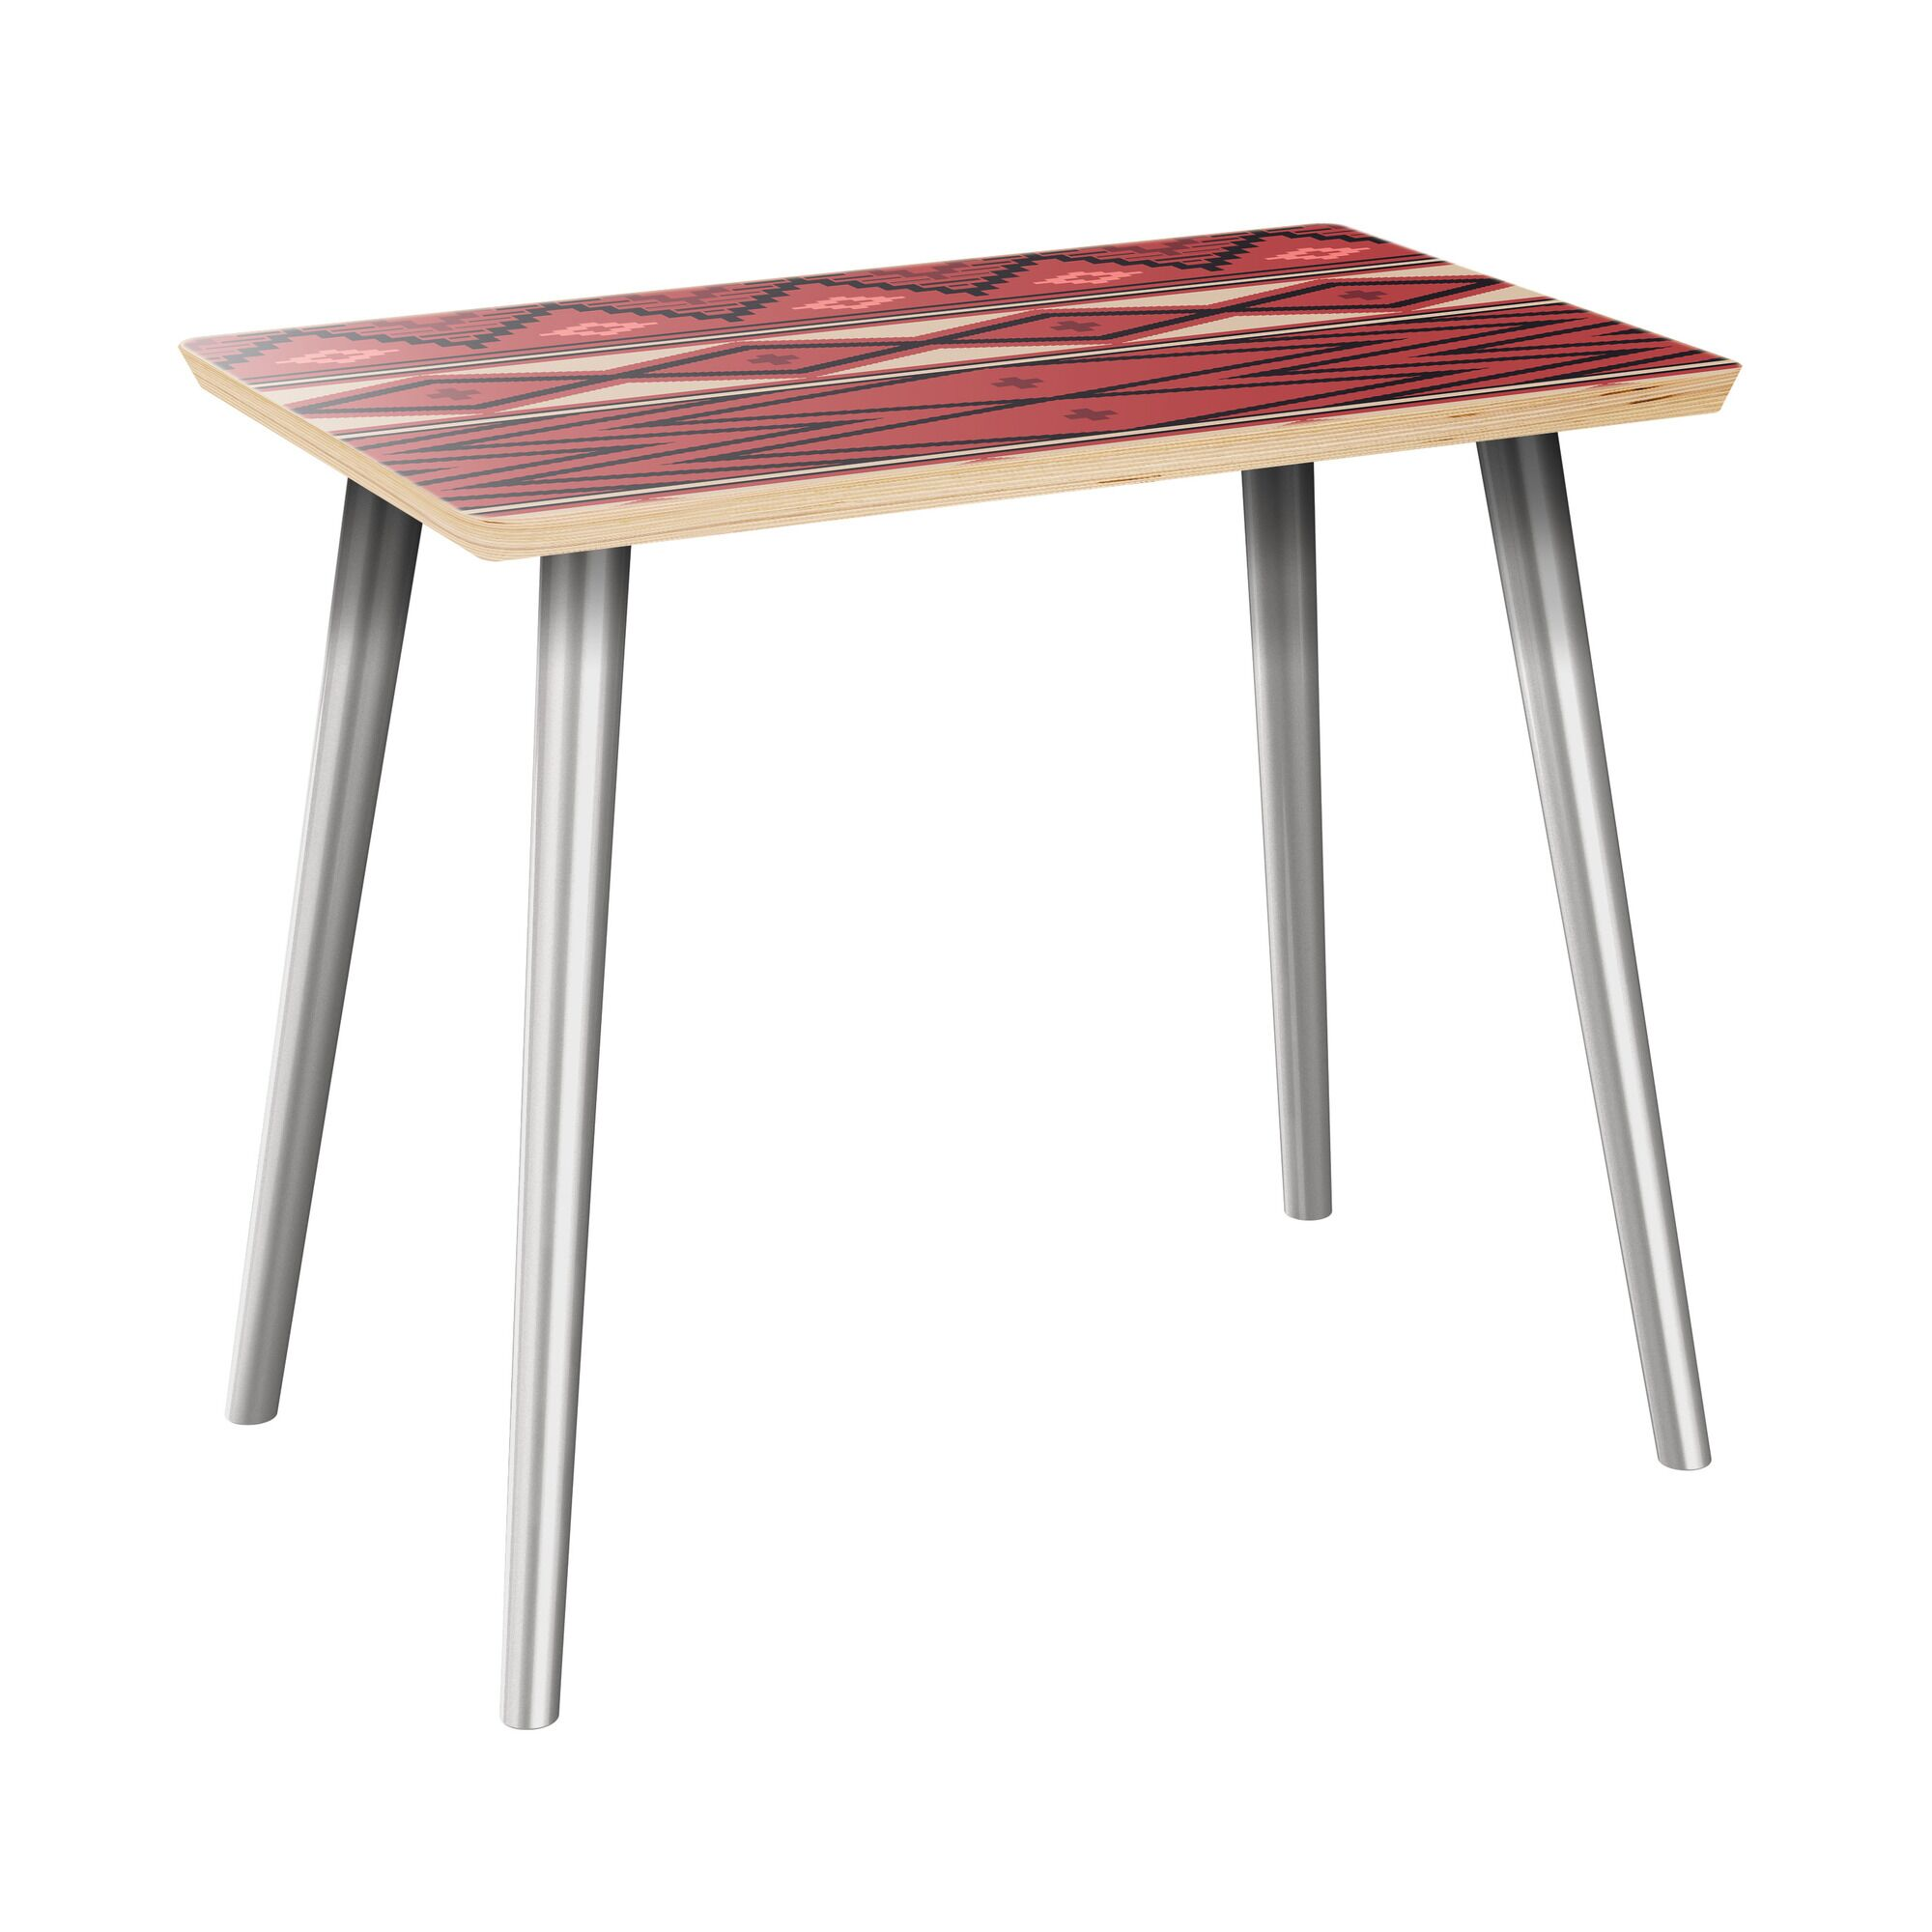 Hoyer End Table Table Top Boarder Color: Natural, Table Base Color: Chrome, Table Top Color: Red